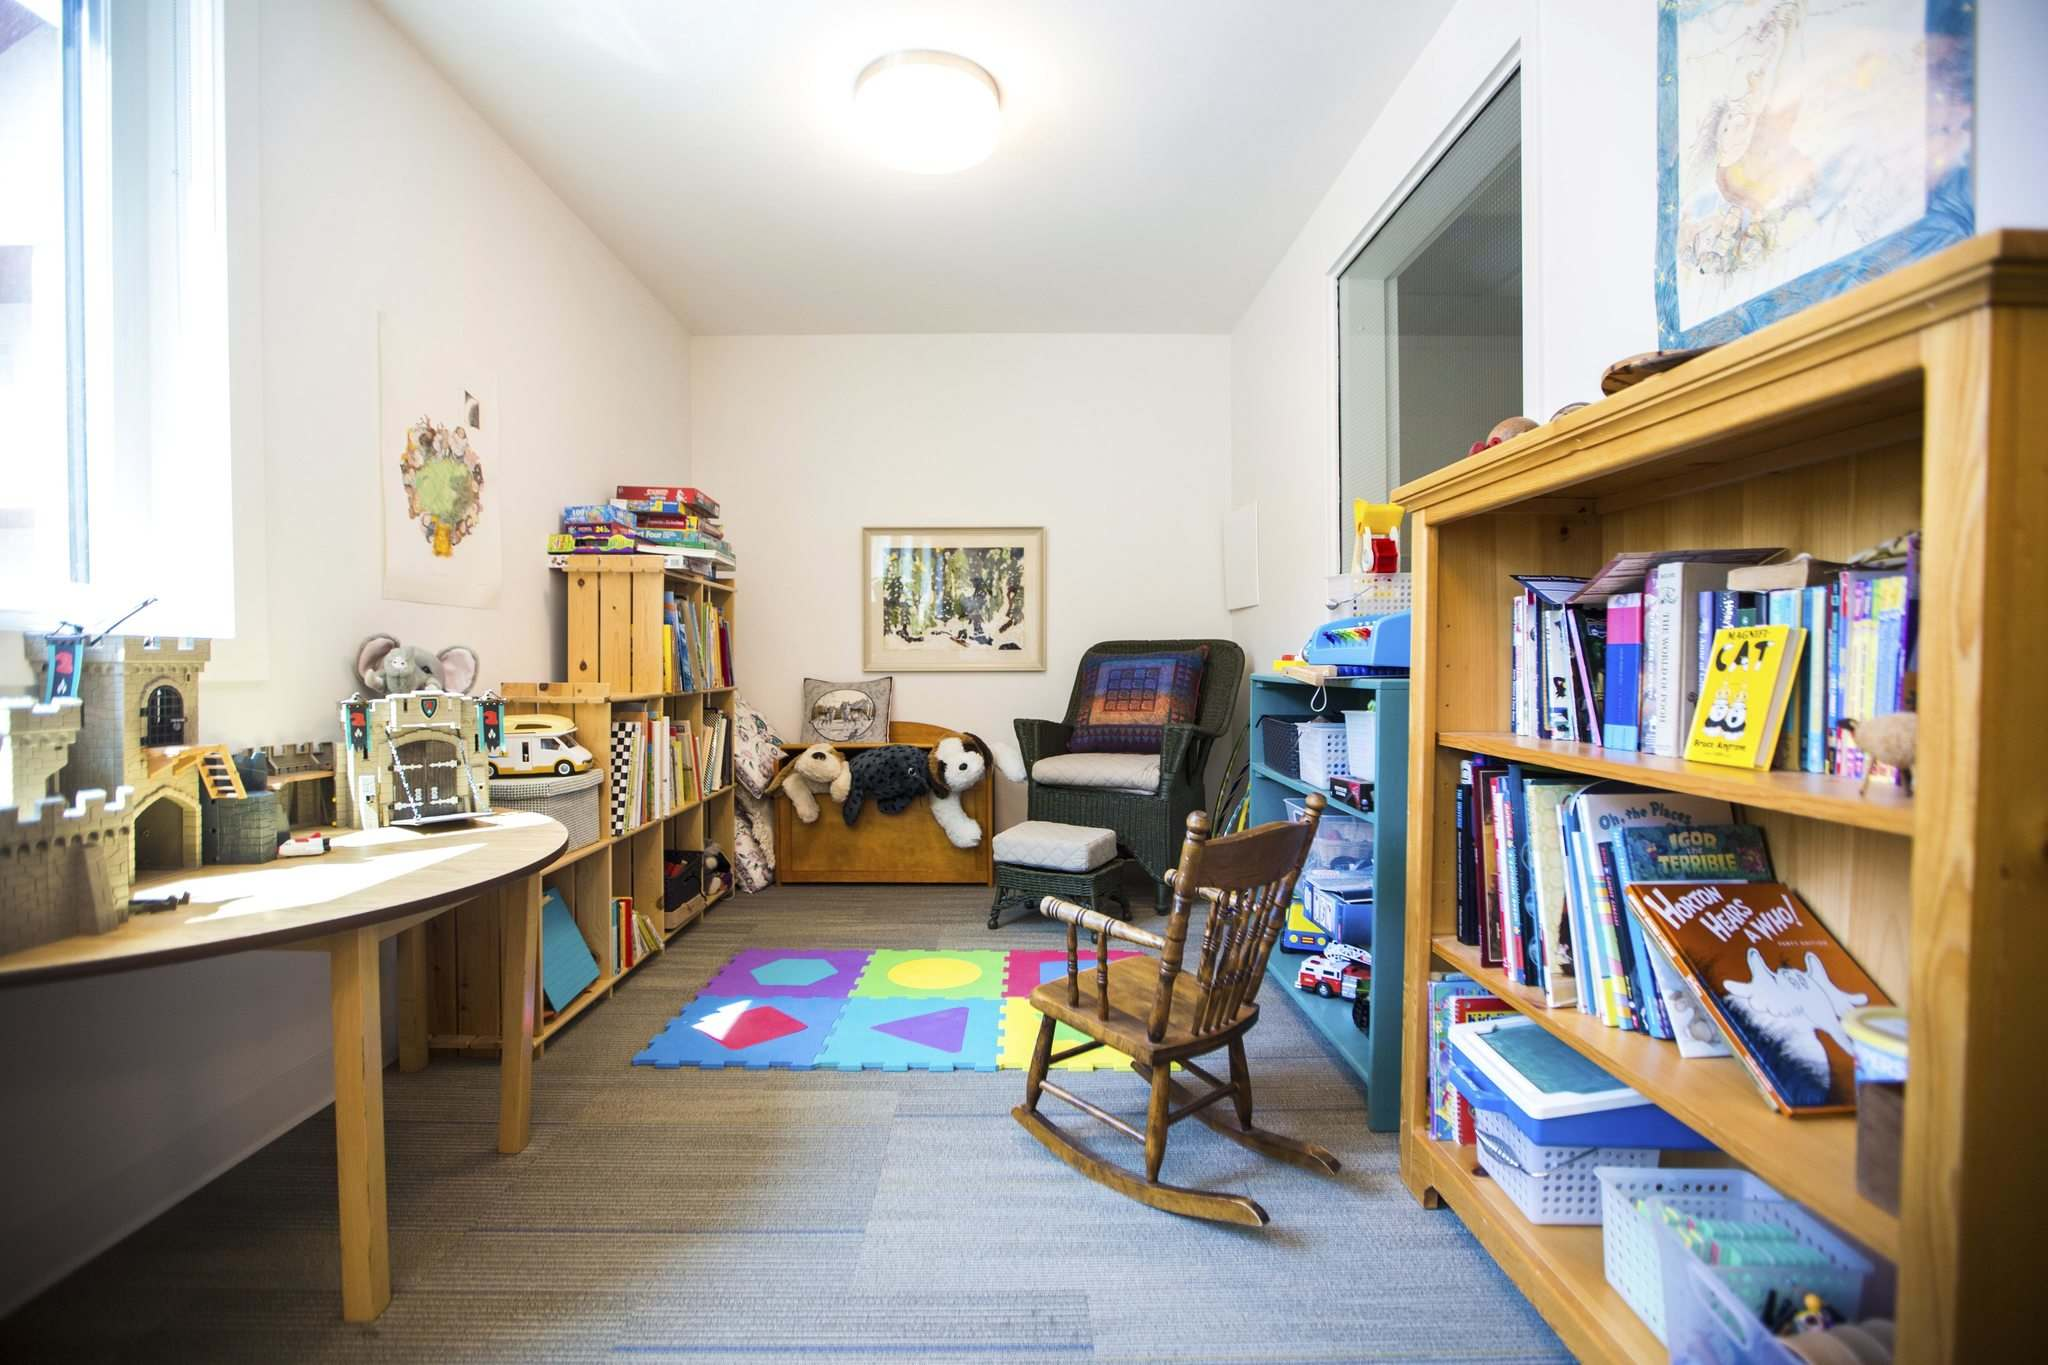 MIKAELA MACKENZIE / WINNIPEG FREE PRESS</p><p>Kids and their parents can enjoy quality time in the co-op's children's nook.</p></p>